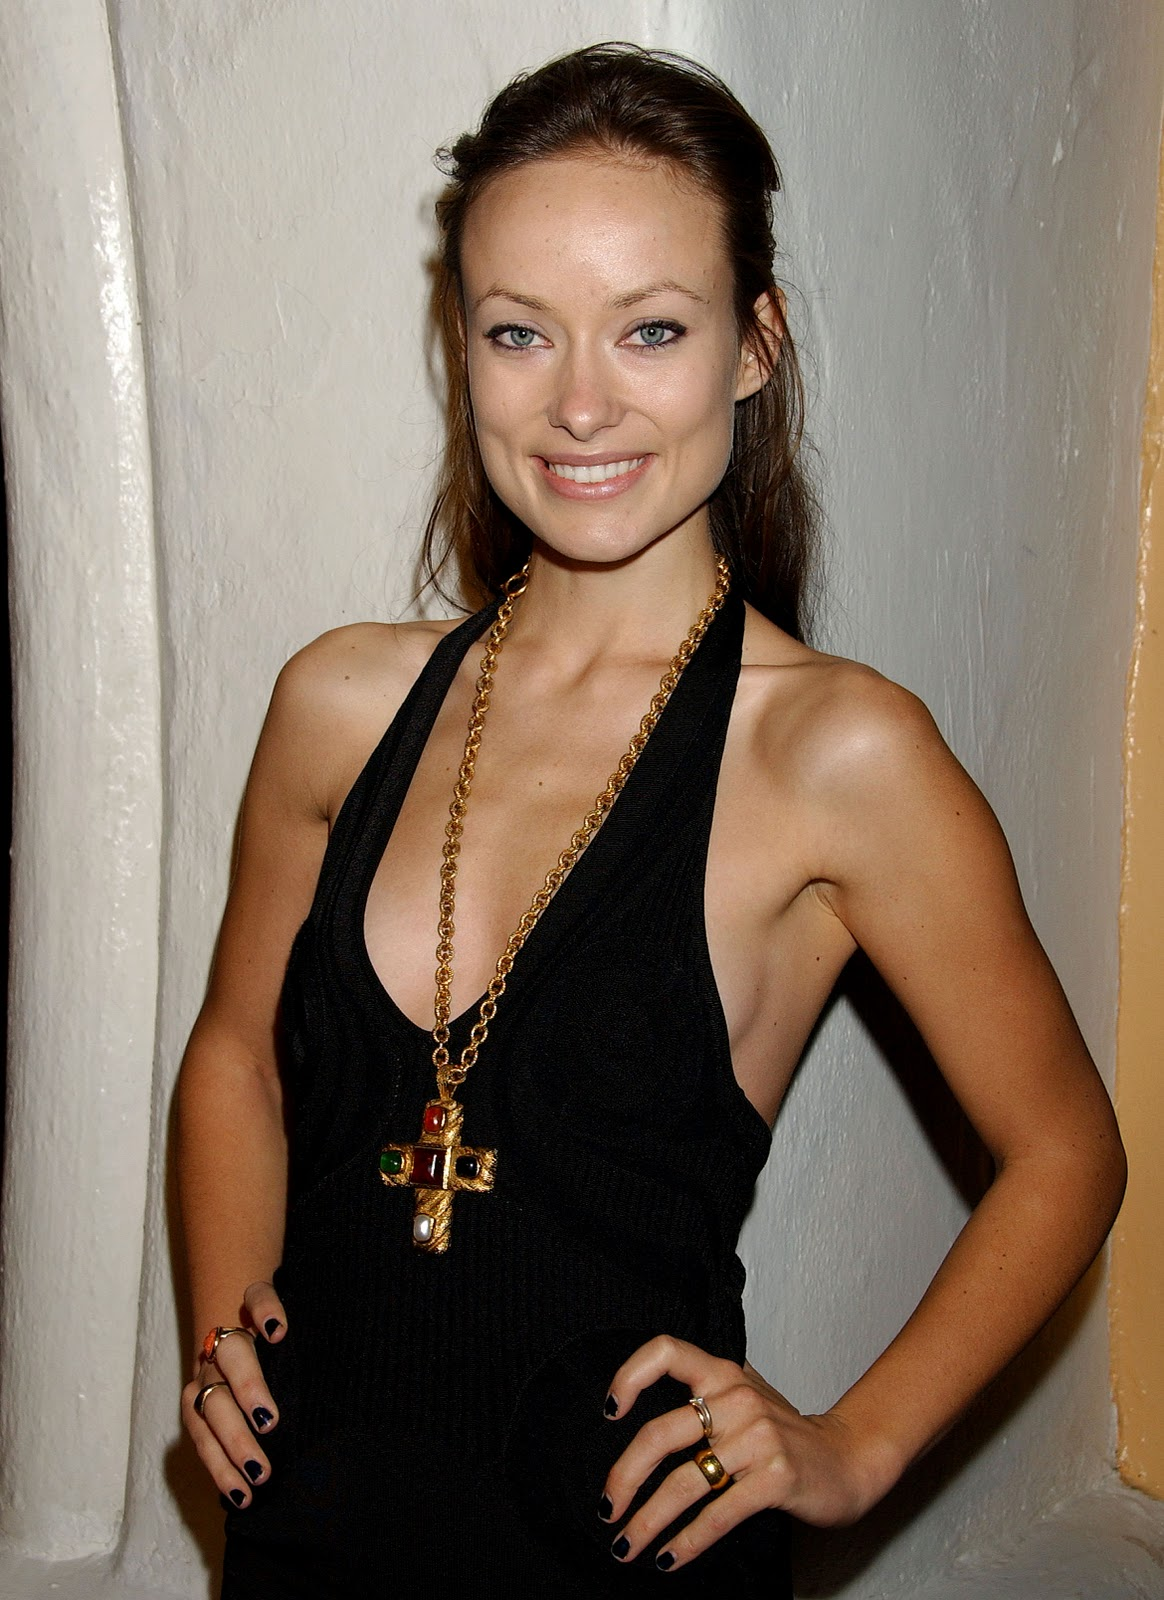 Olivia Wilde Profile And New Pictures 2013: Olivia Wilde Pictures Gallery (3)